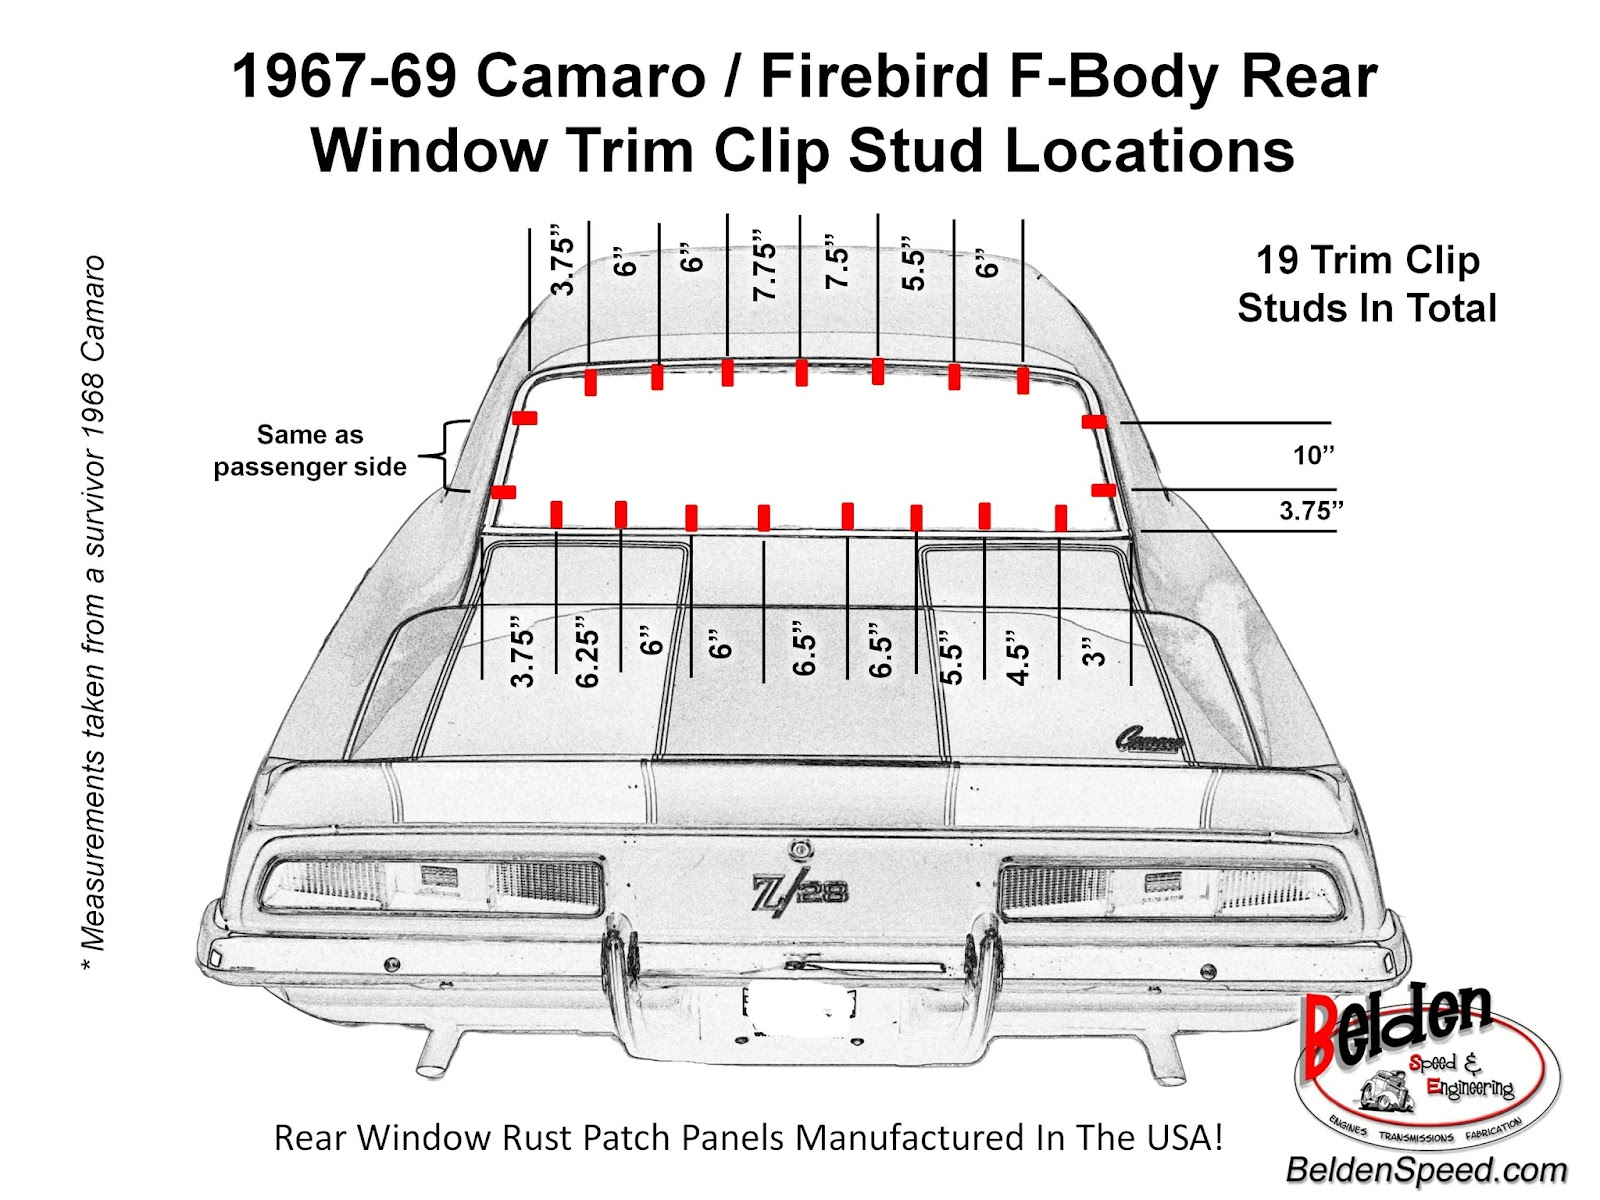 hight resolution of 1967 69 camaro firebird f body rear window trim clip stud location diagram